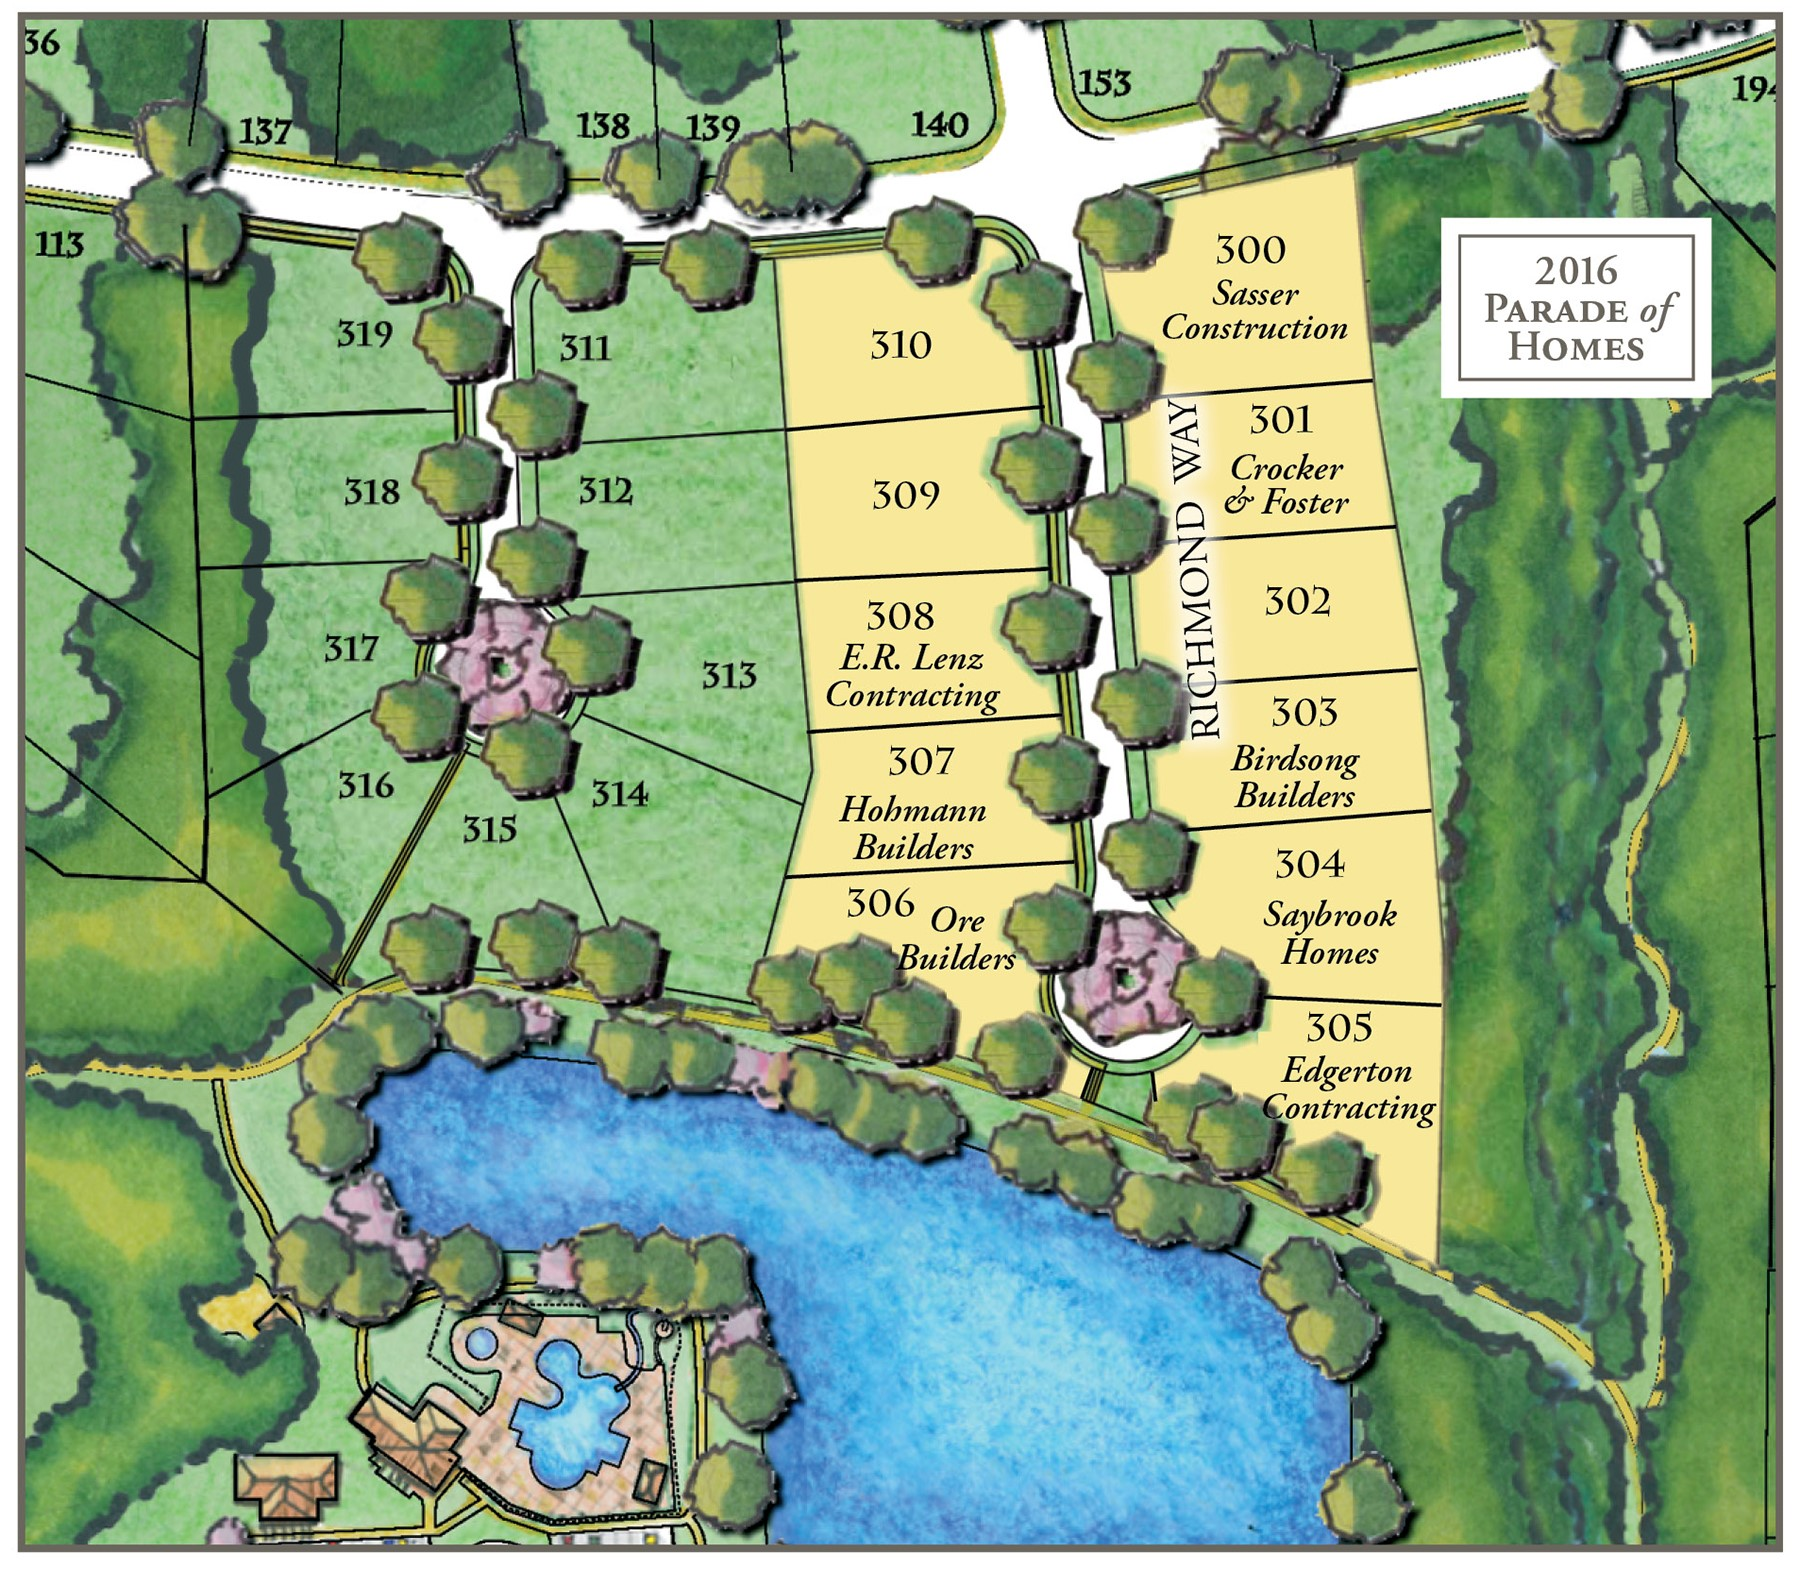 PARADE of HOMES Site Map